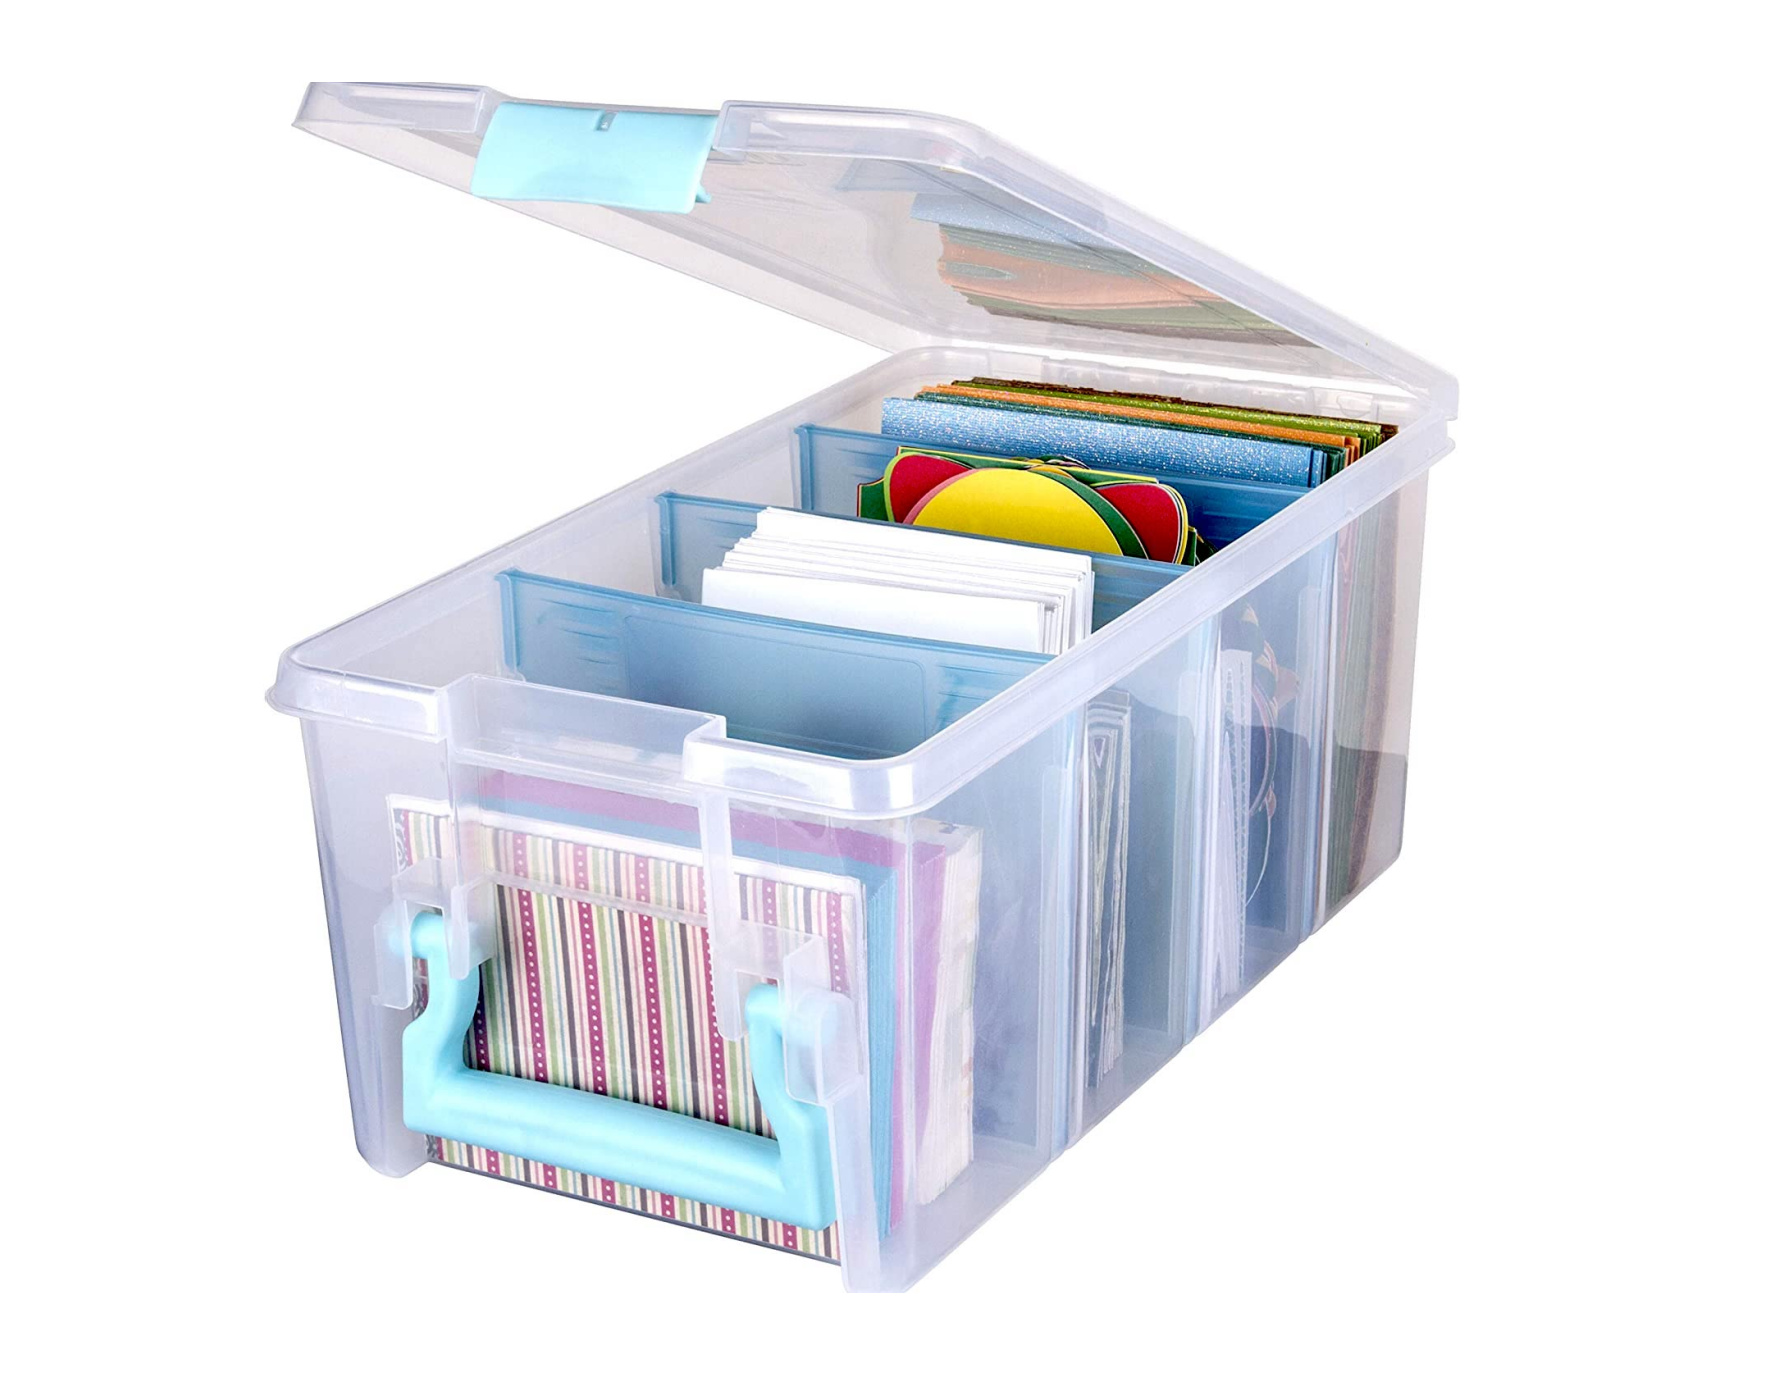 ArtBin 6925AA Semi Satchel with Removable Dividers Portable Art & Craft Organizer with Handle